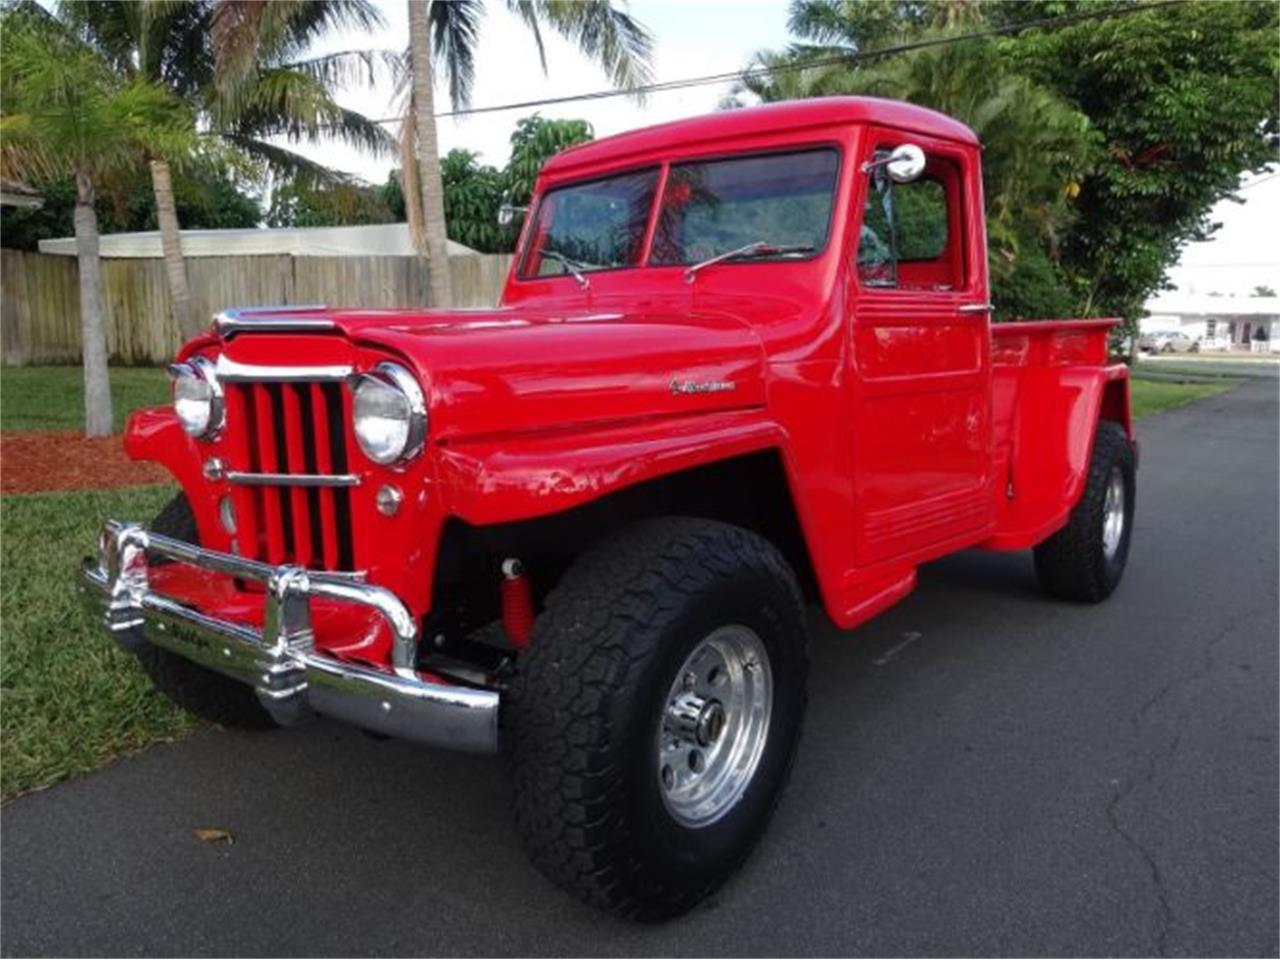 Willys Jeep Truck For Sale >> 1959 Willys Jeep For Sale Classiccars Com Cc 1173534